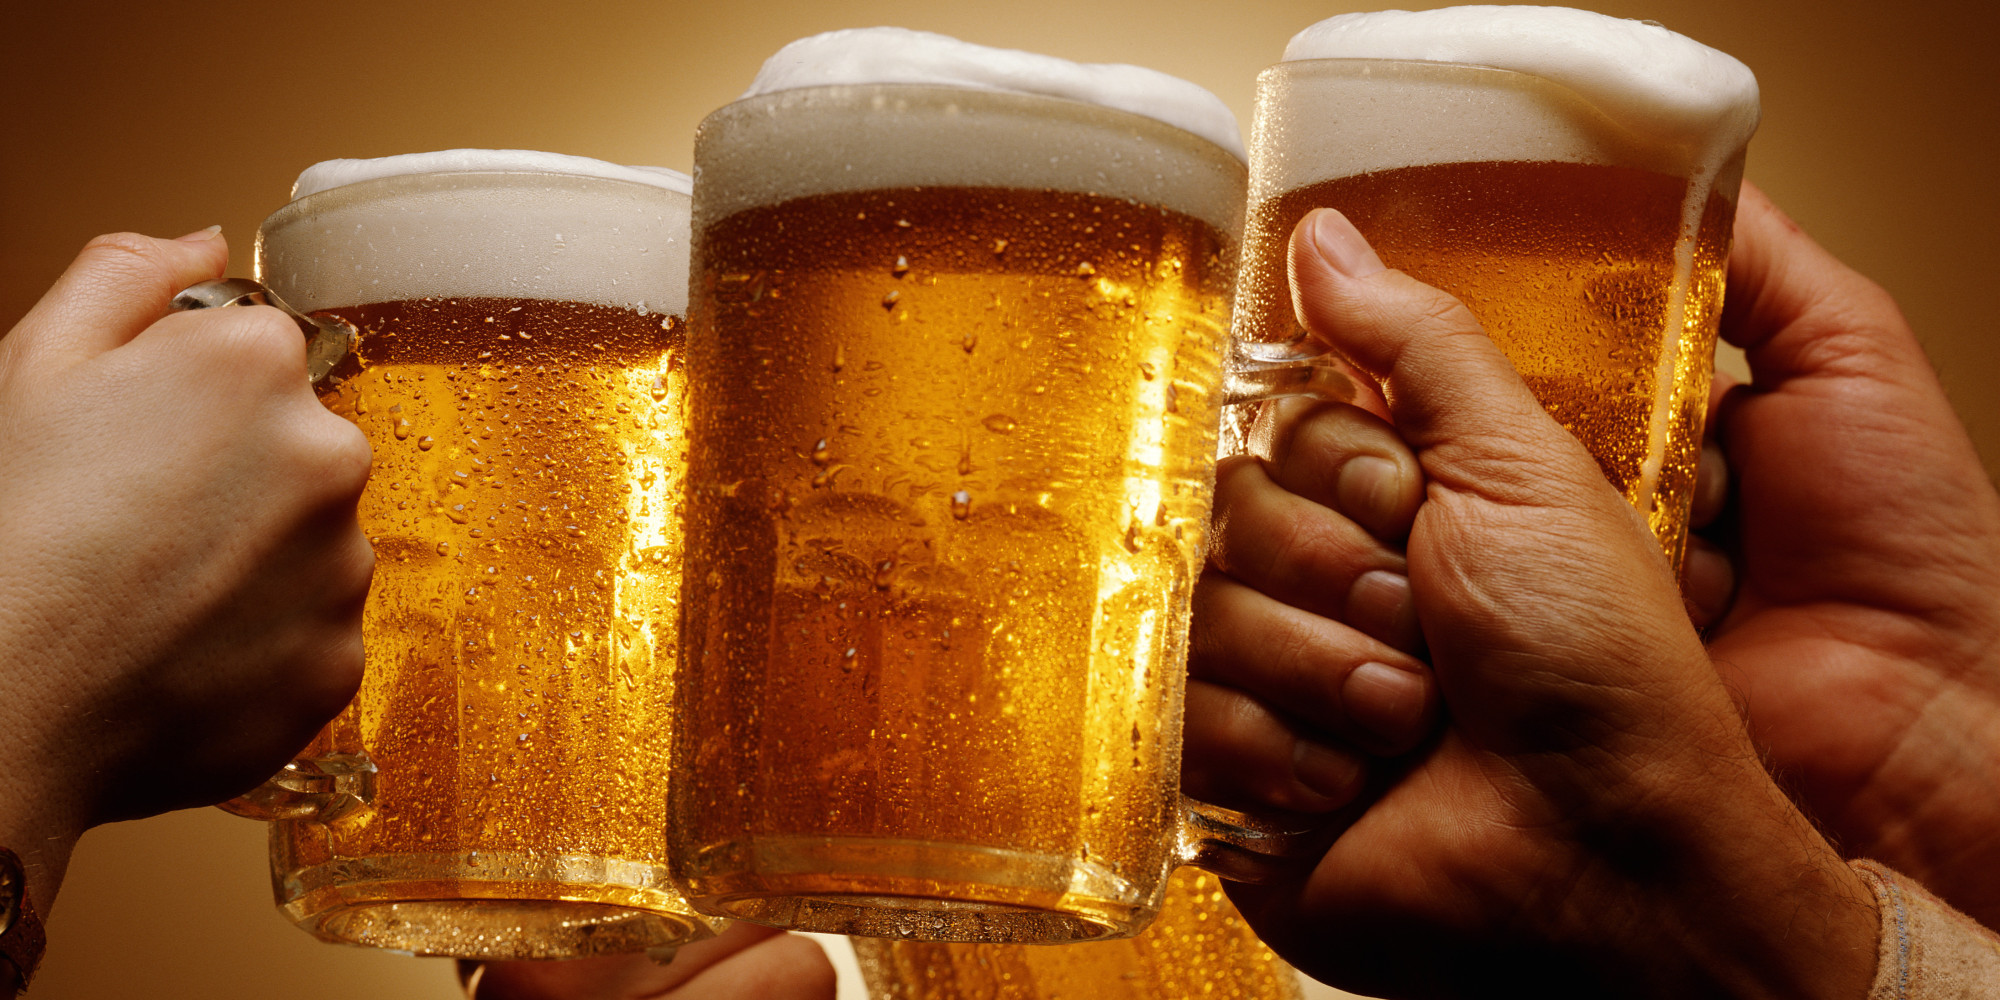 Beer Facts to Share on International Beer Day